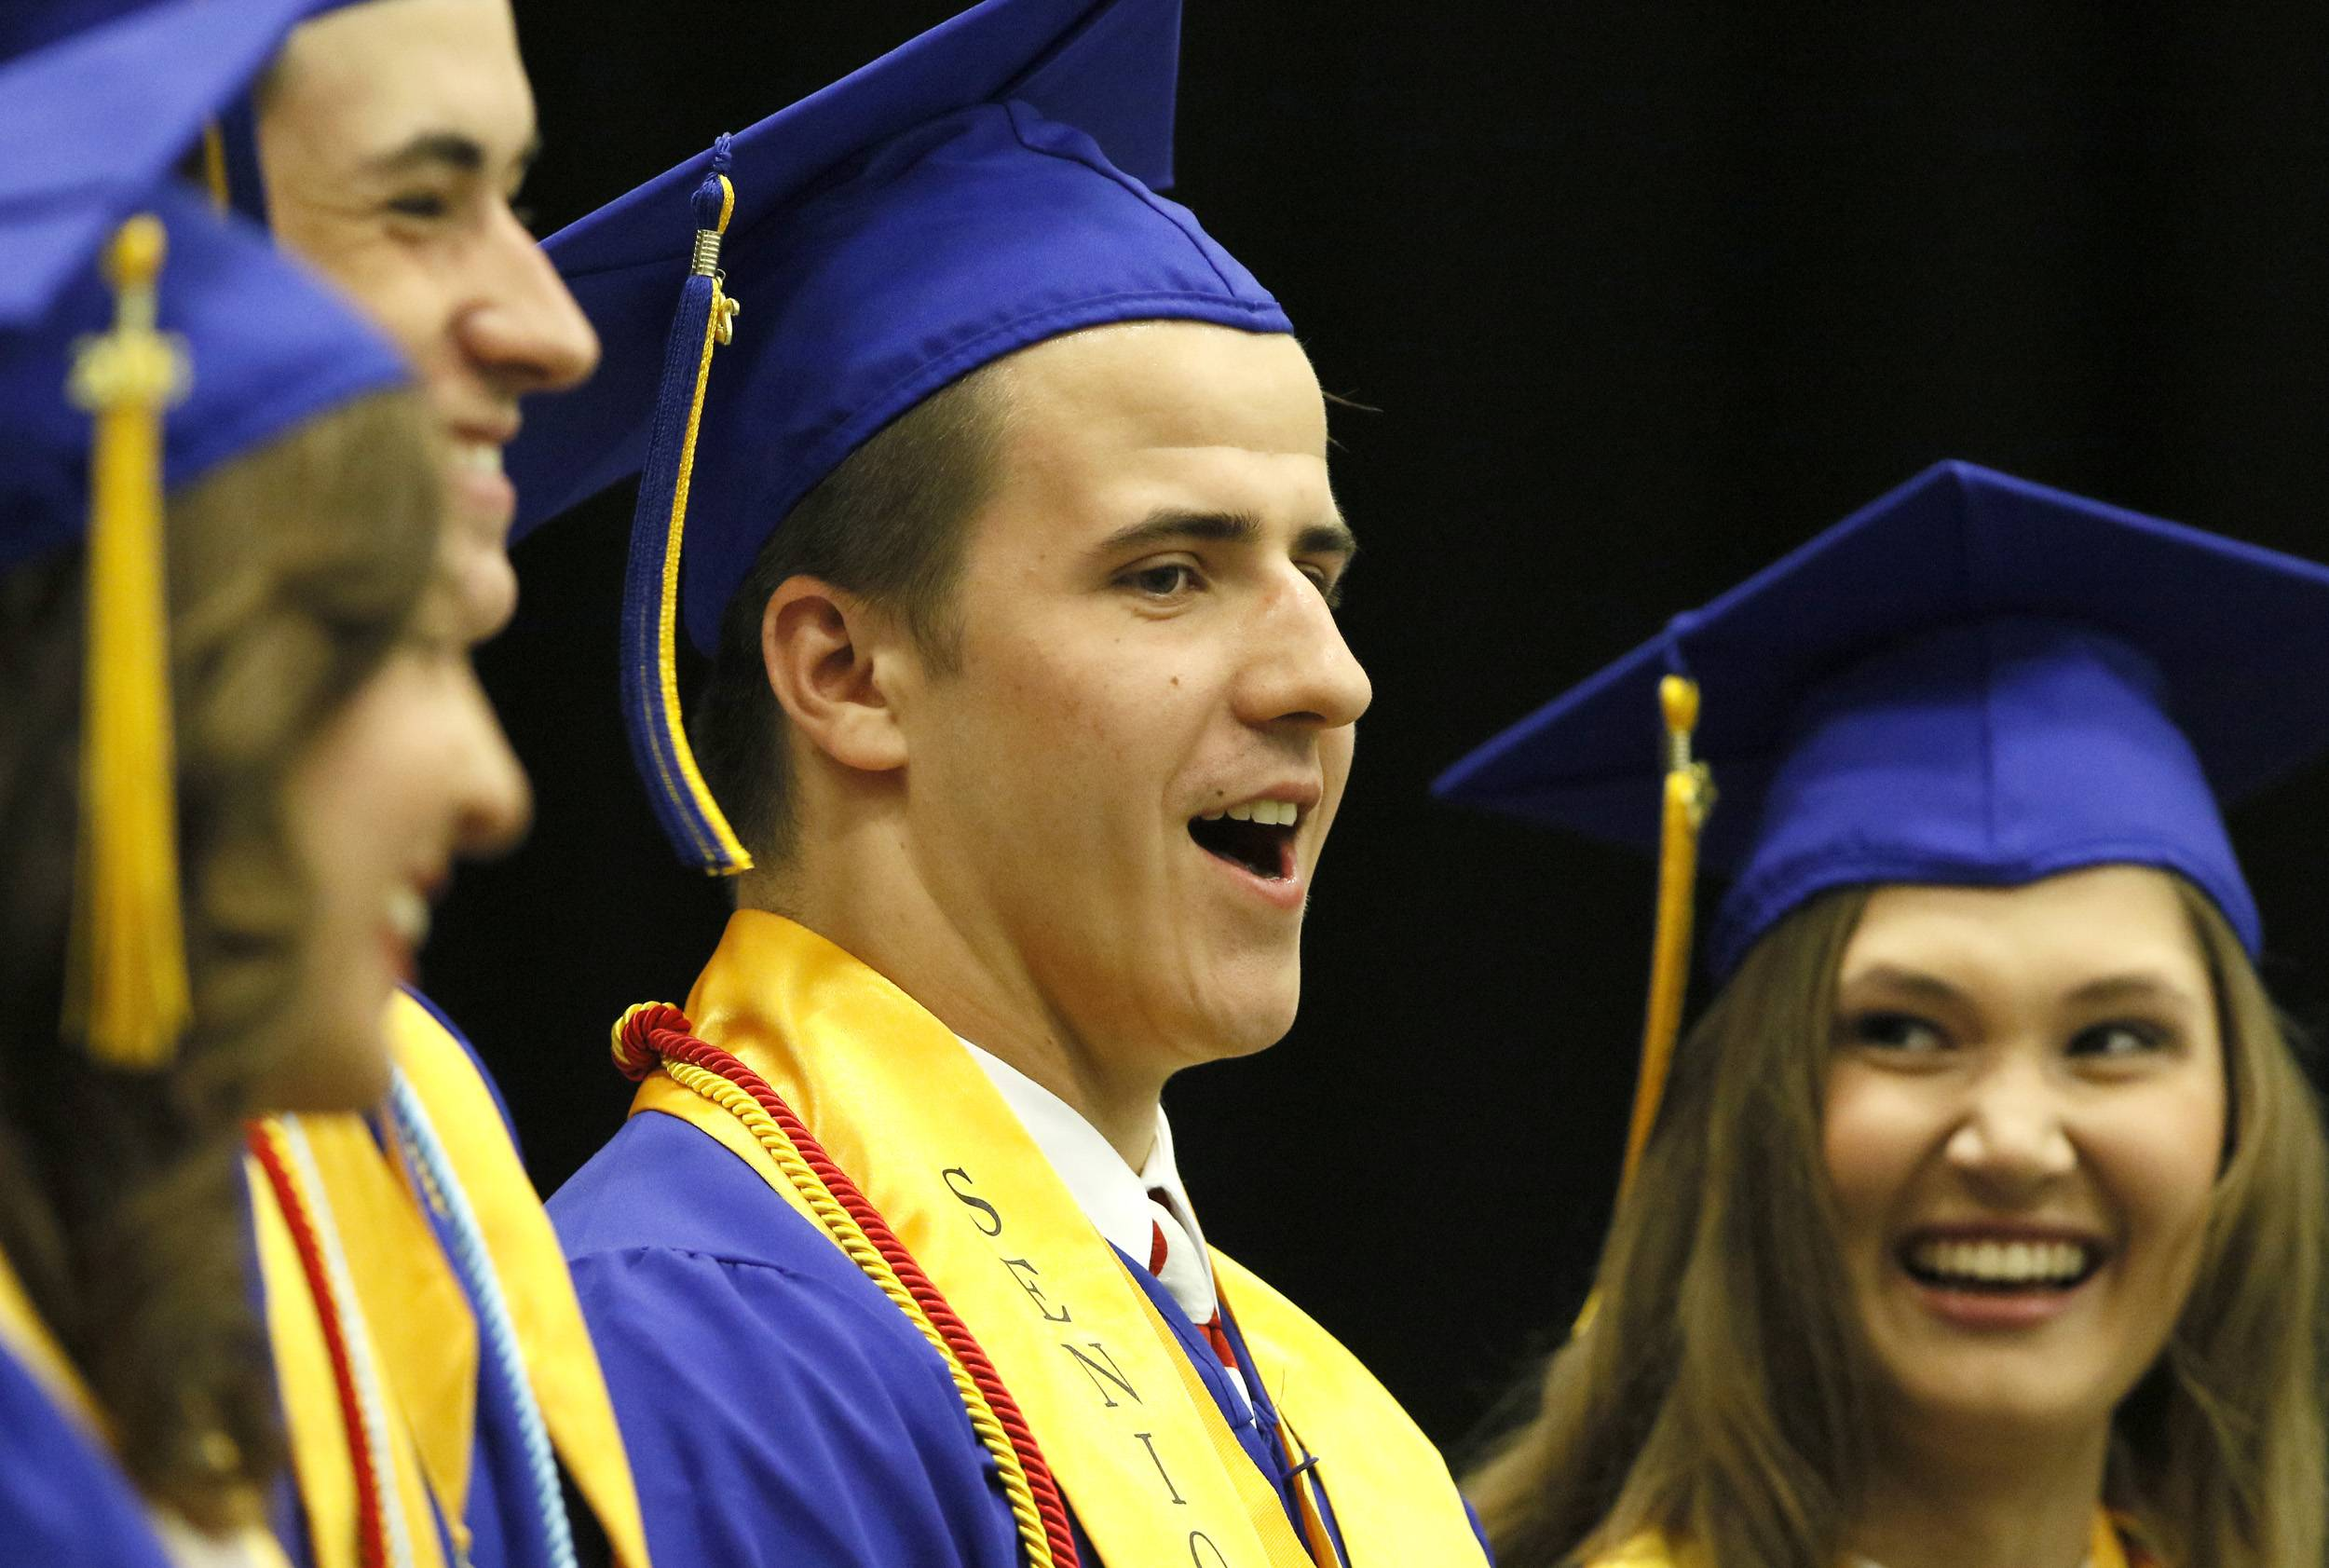 Class President Crayton Shepherd stands on the graduation stage during the Wheaton North graduation.